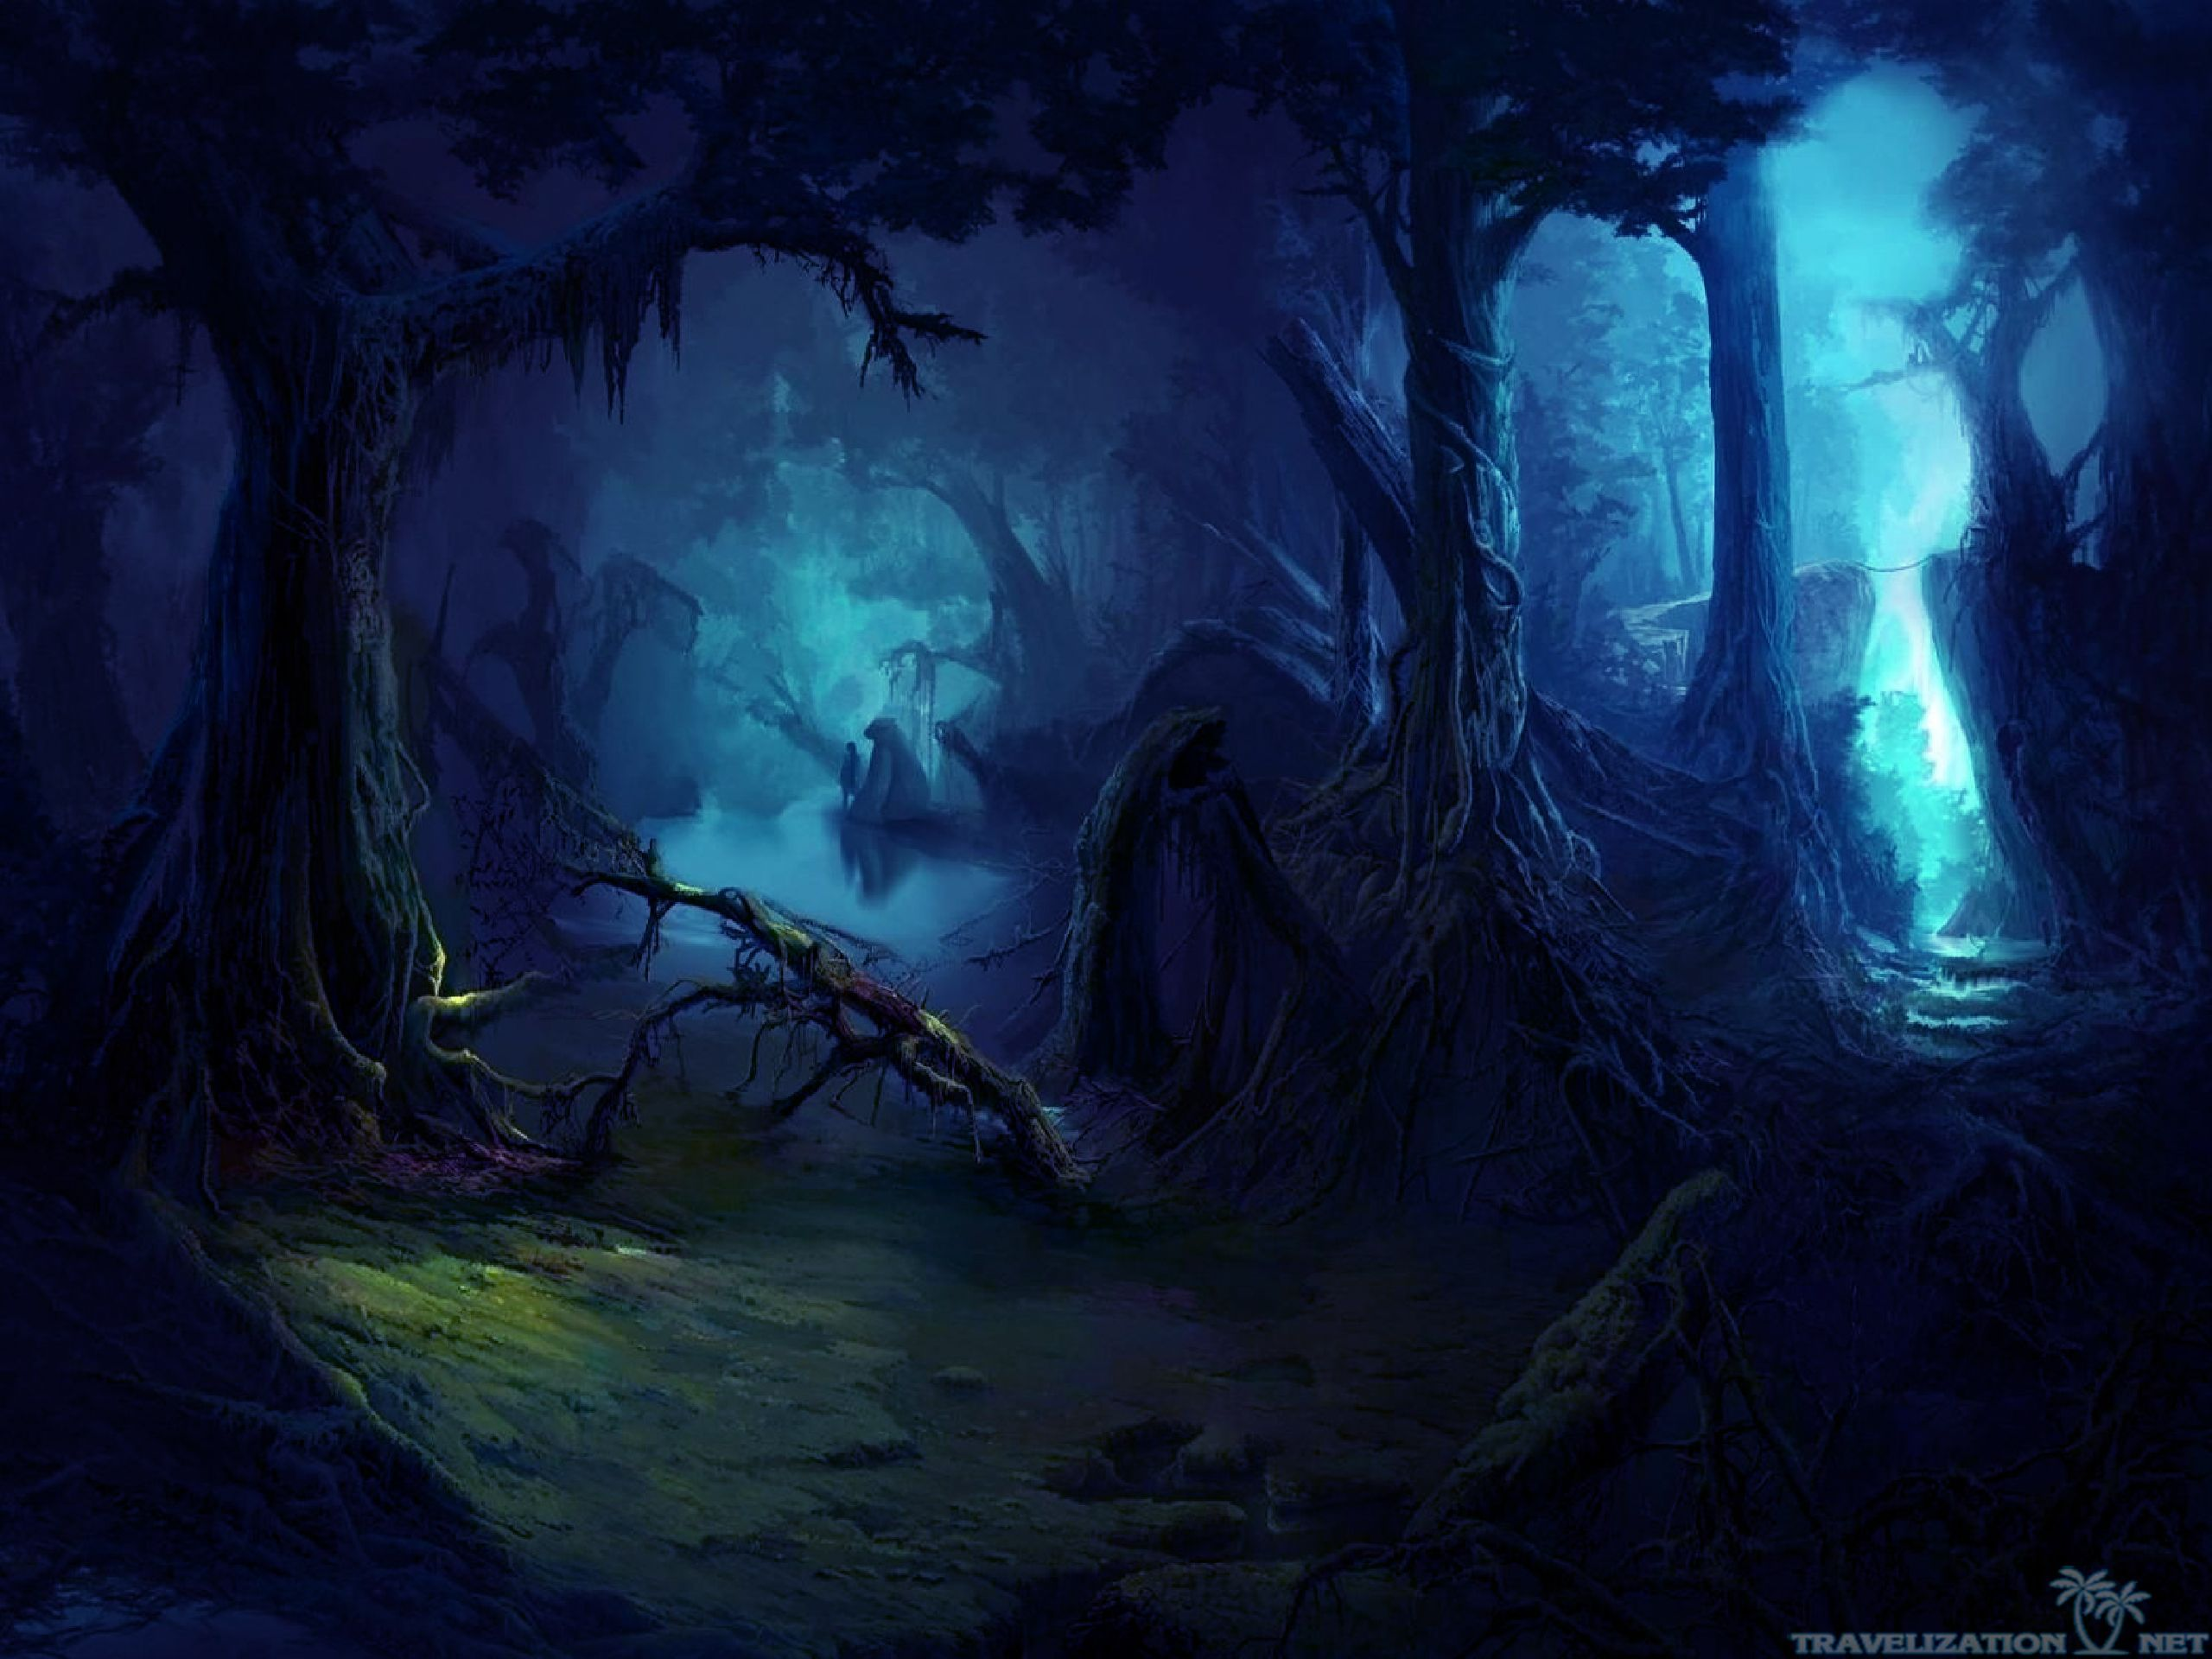 magical-side-of-dark-forest-wallpapers-2560x1920.jpg